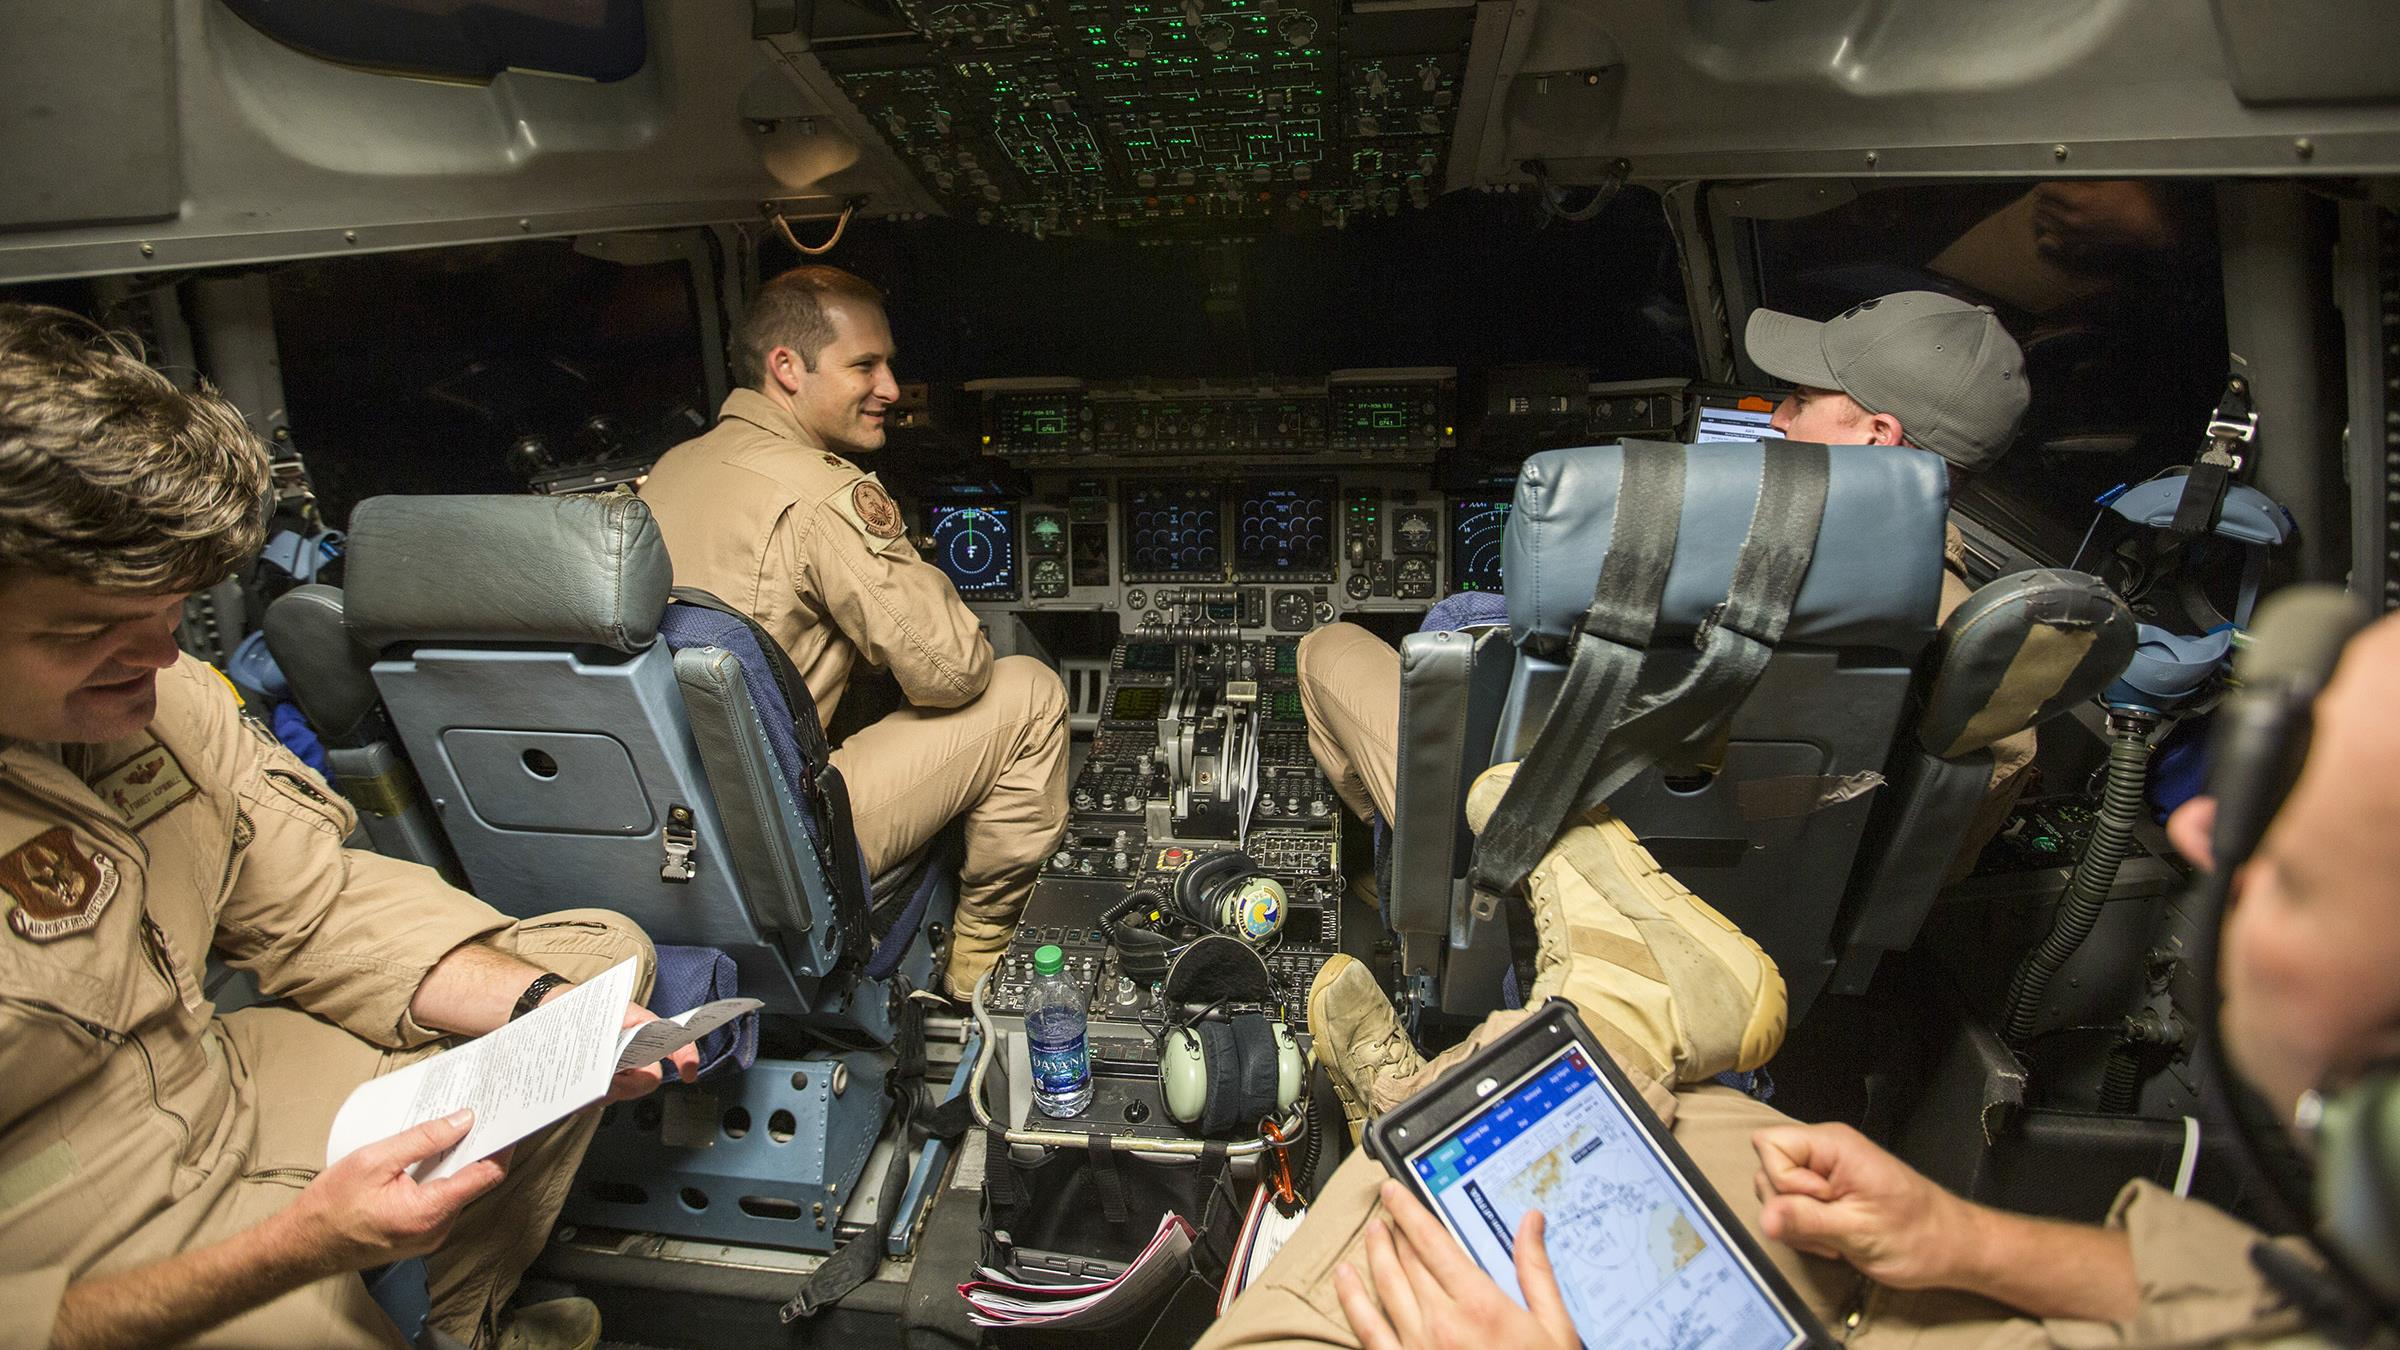 amlo streamlines marsoc deployment process  u0026gt  u s  air force expeditionary center  u0026gt  article display